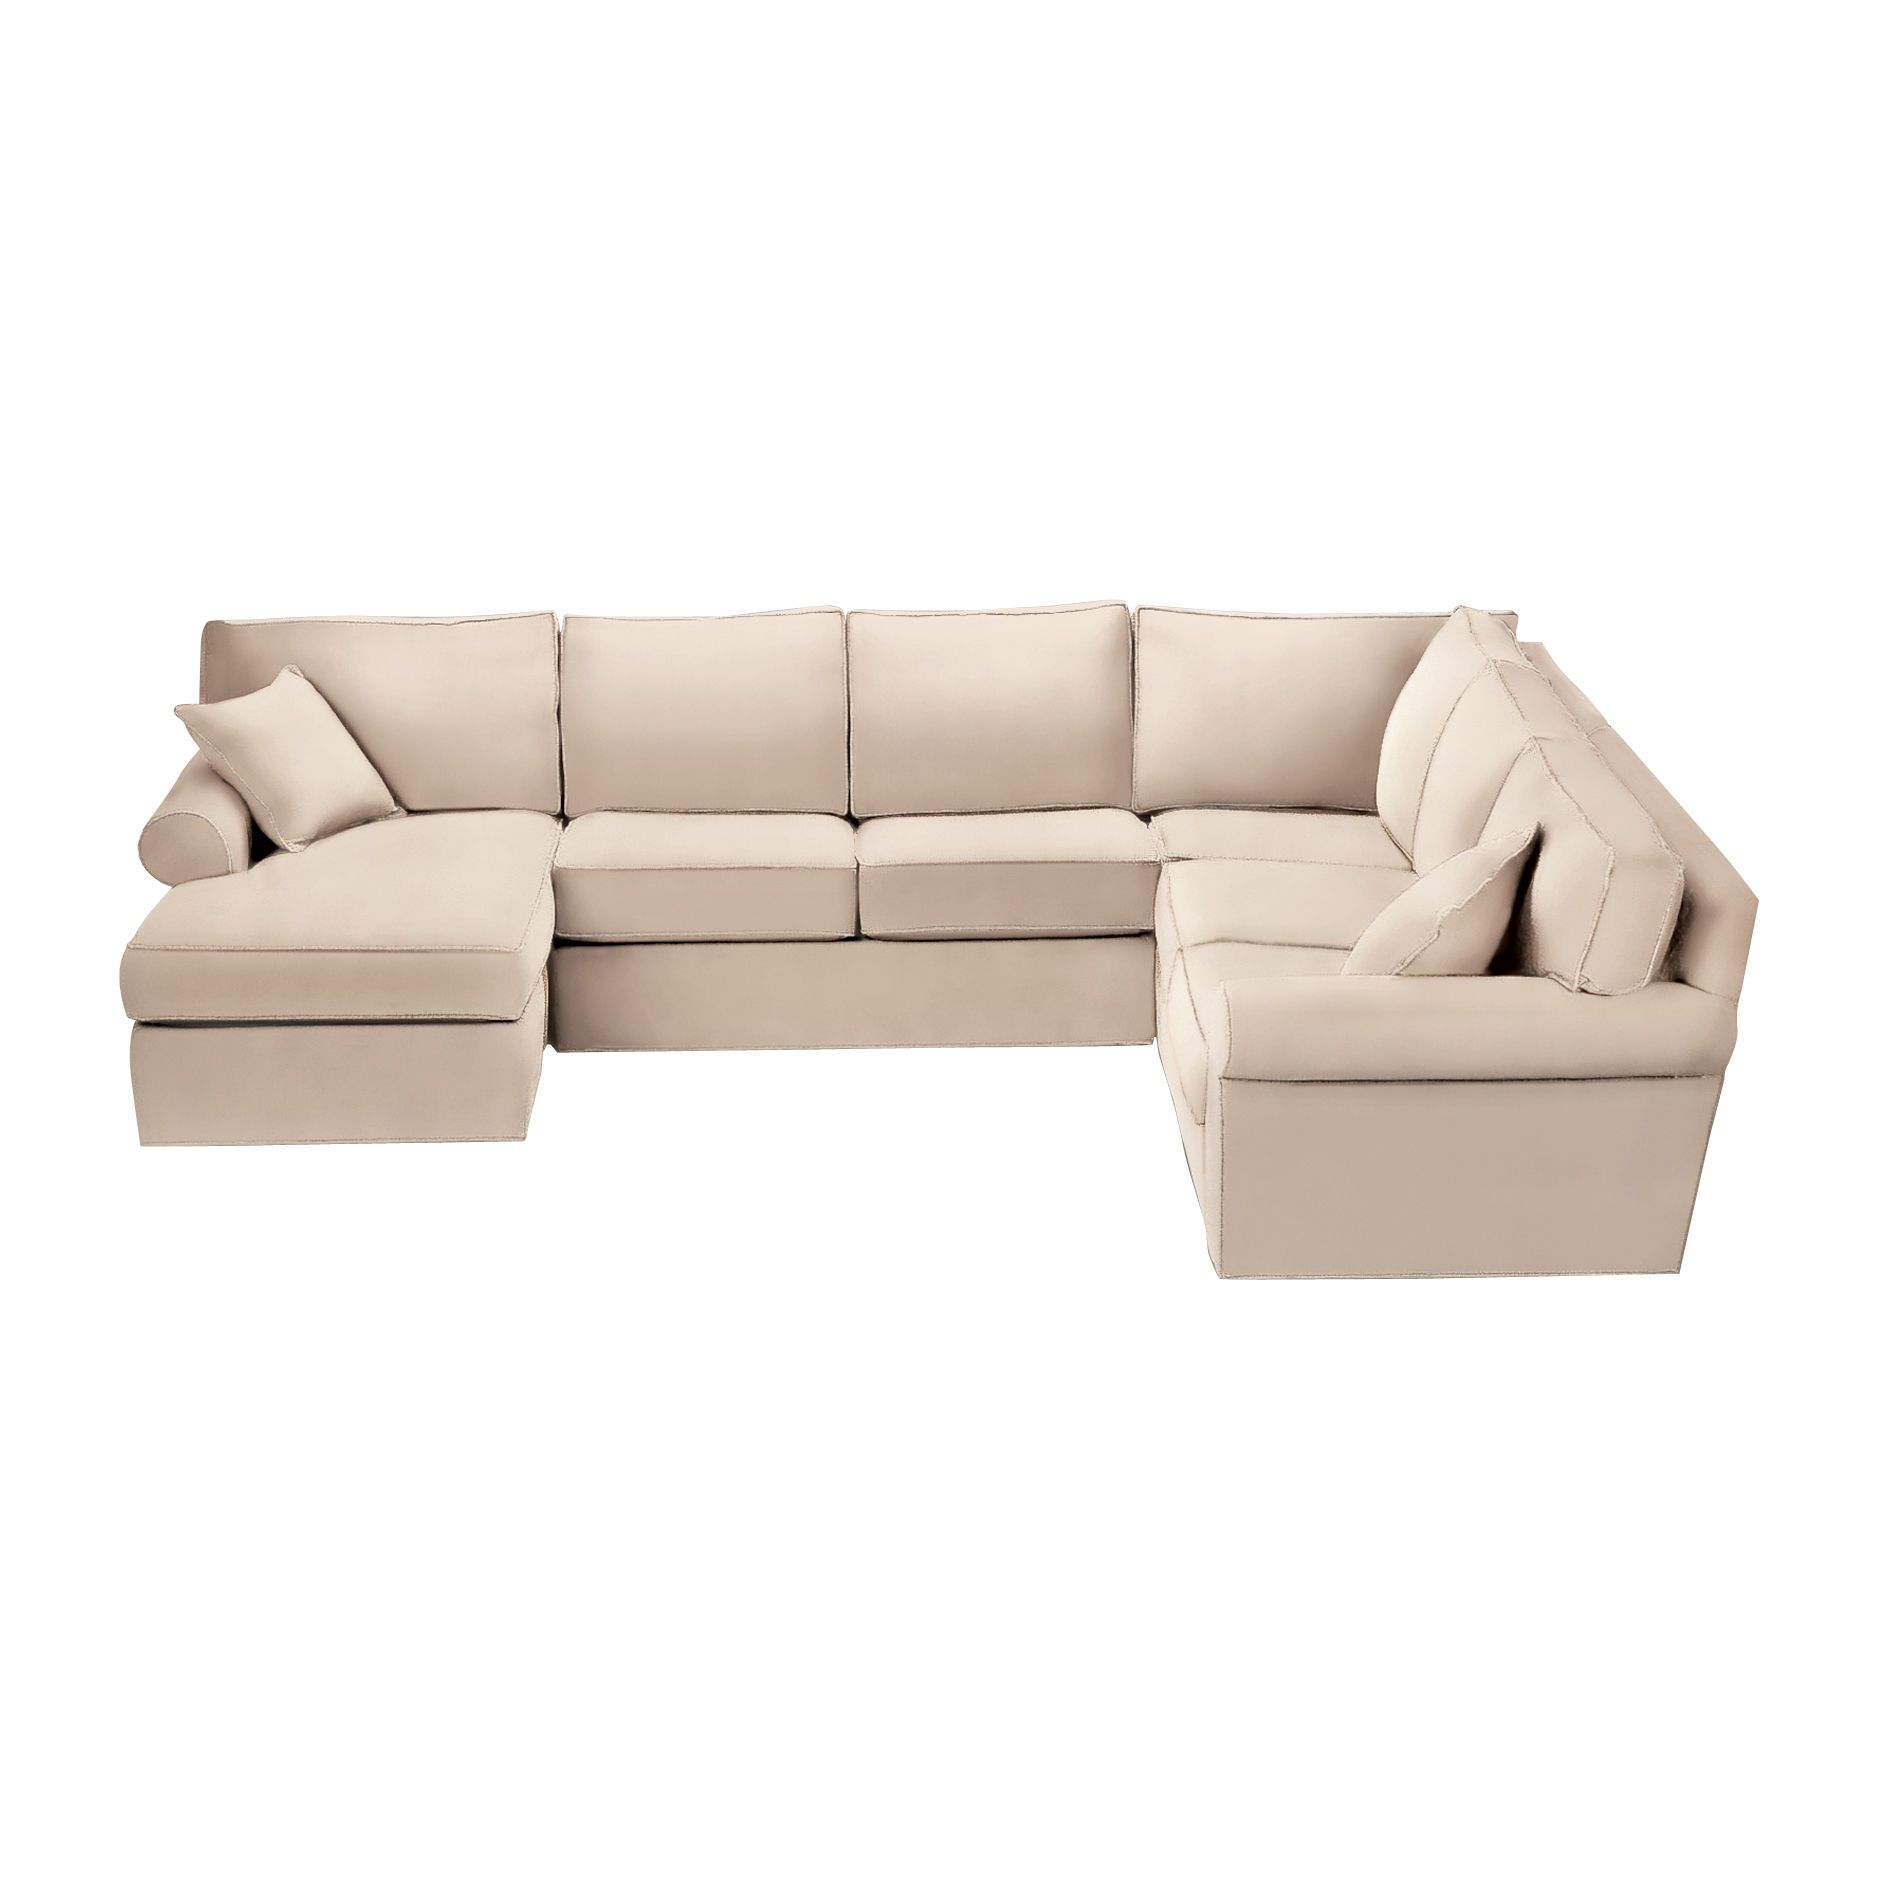 Captivating Our Current Sectional In Leather Great Depth For Tall People And Down Make  It Comfortable 10 Years Later The Bottom Cushion Are Springy Soft As Day  Love ...